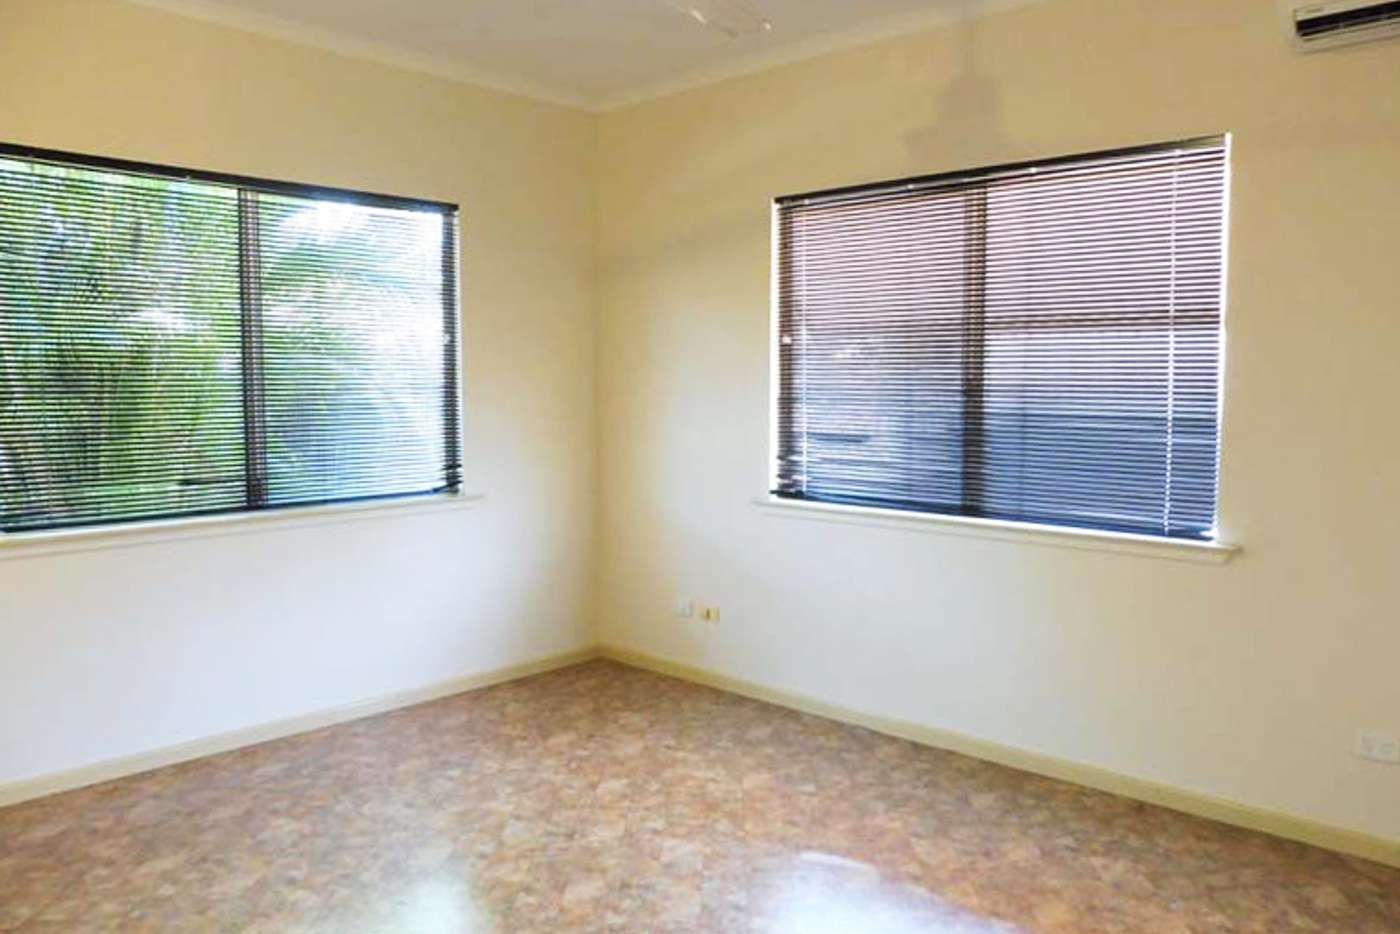 Sixth view of Homely house listing, 46A Blackman Street, Broome WA 6725